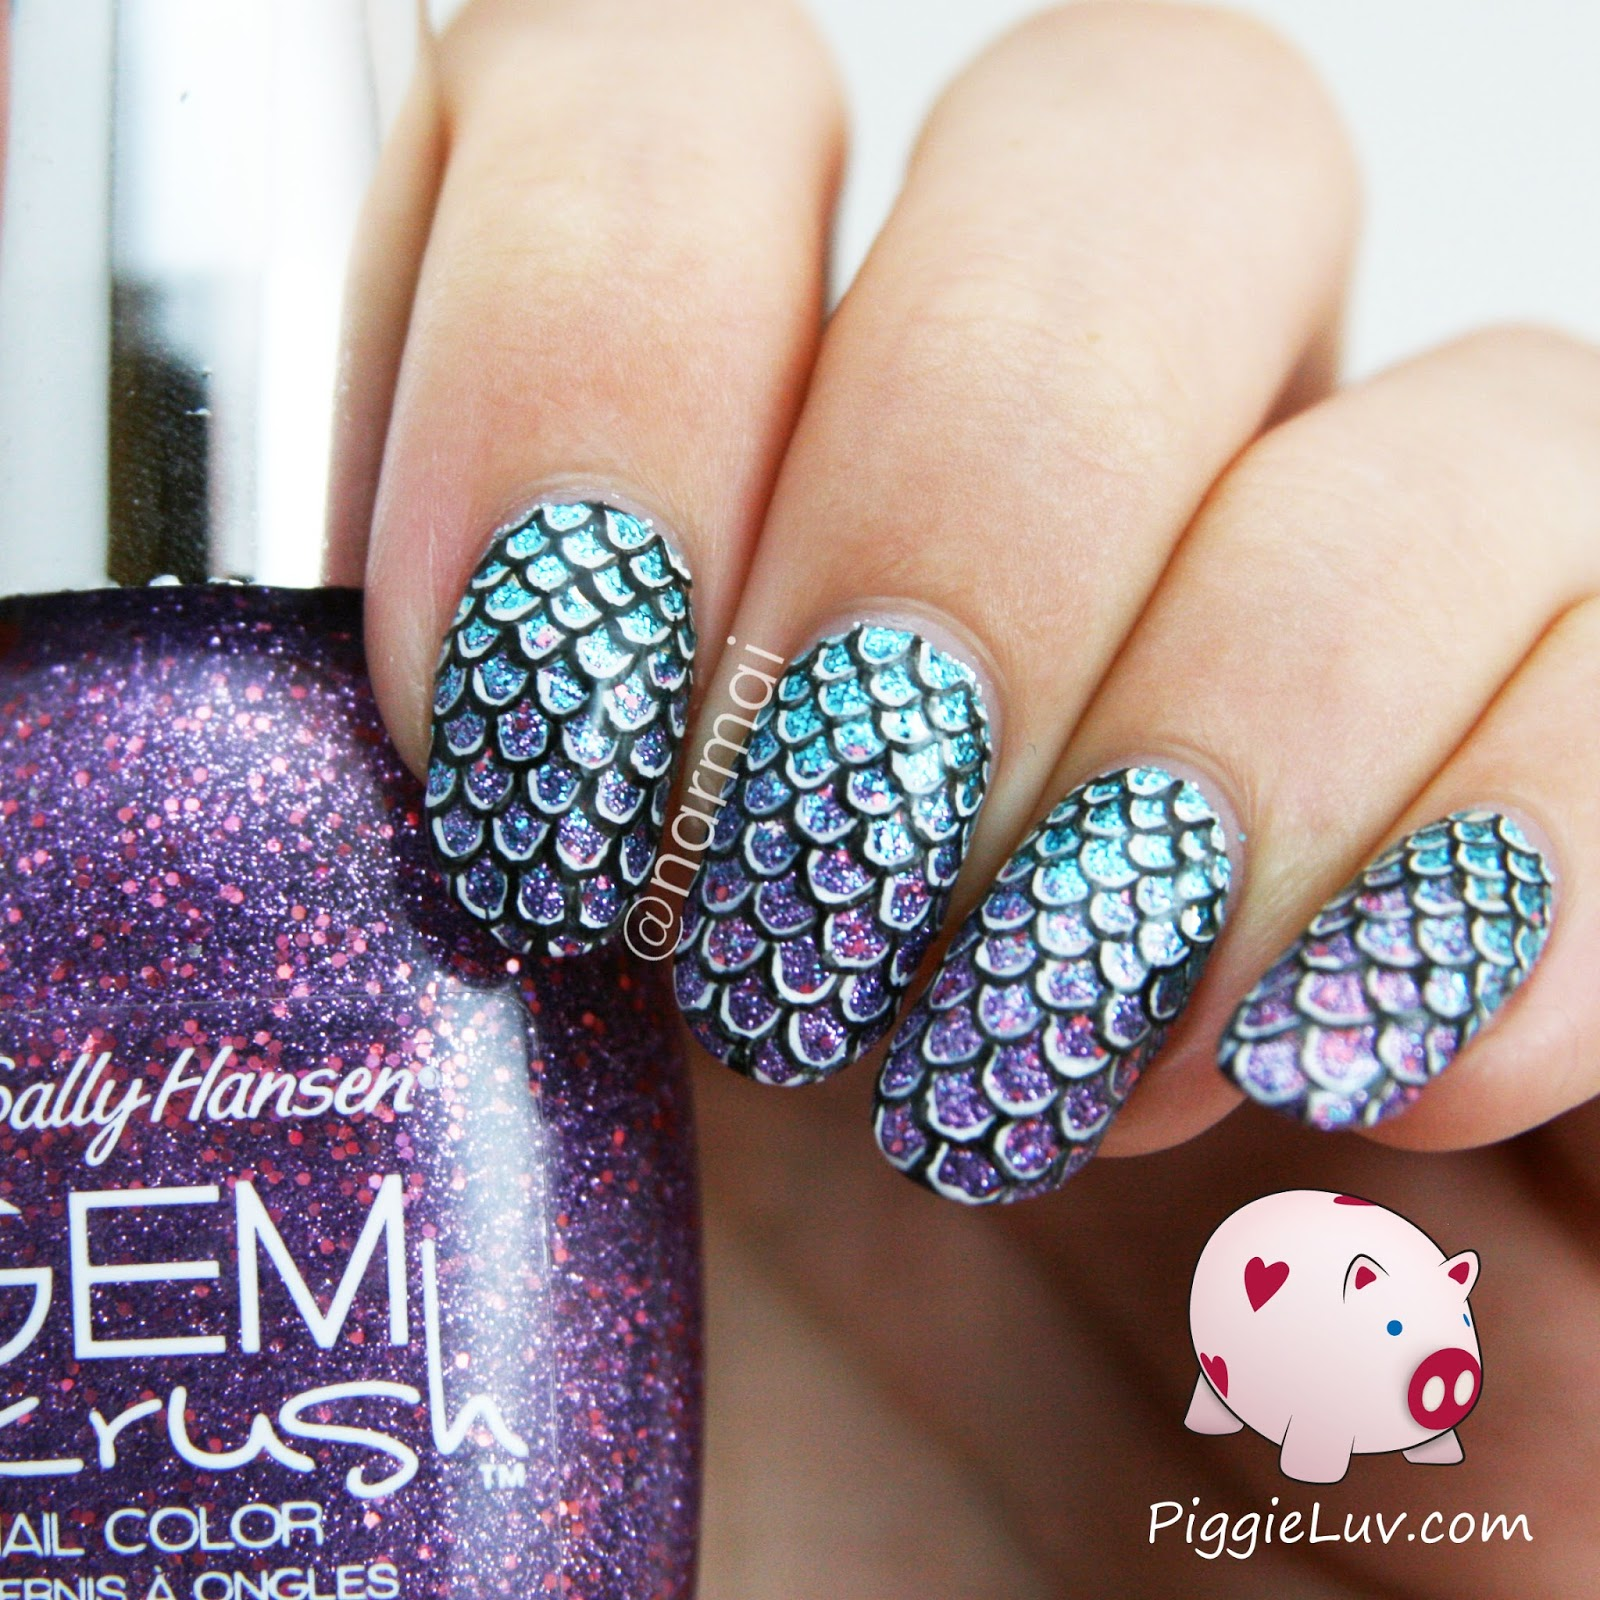 PiggieLuv: Mermaid scales nail art + video tutorial